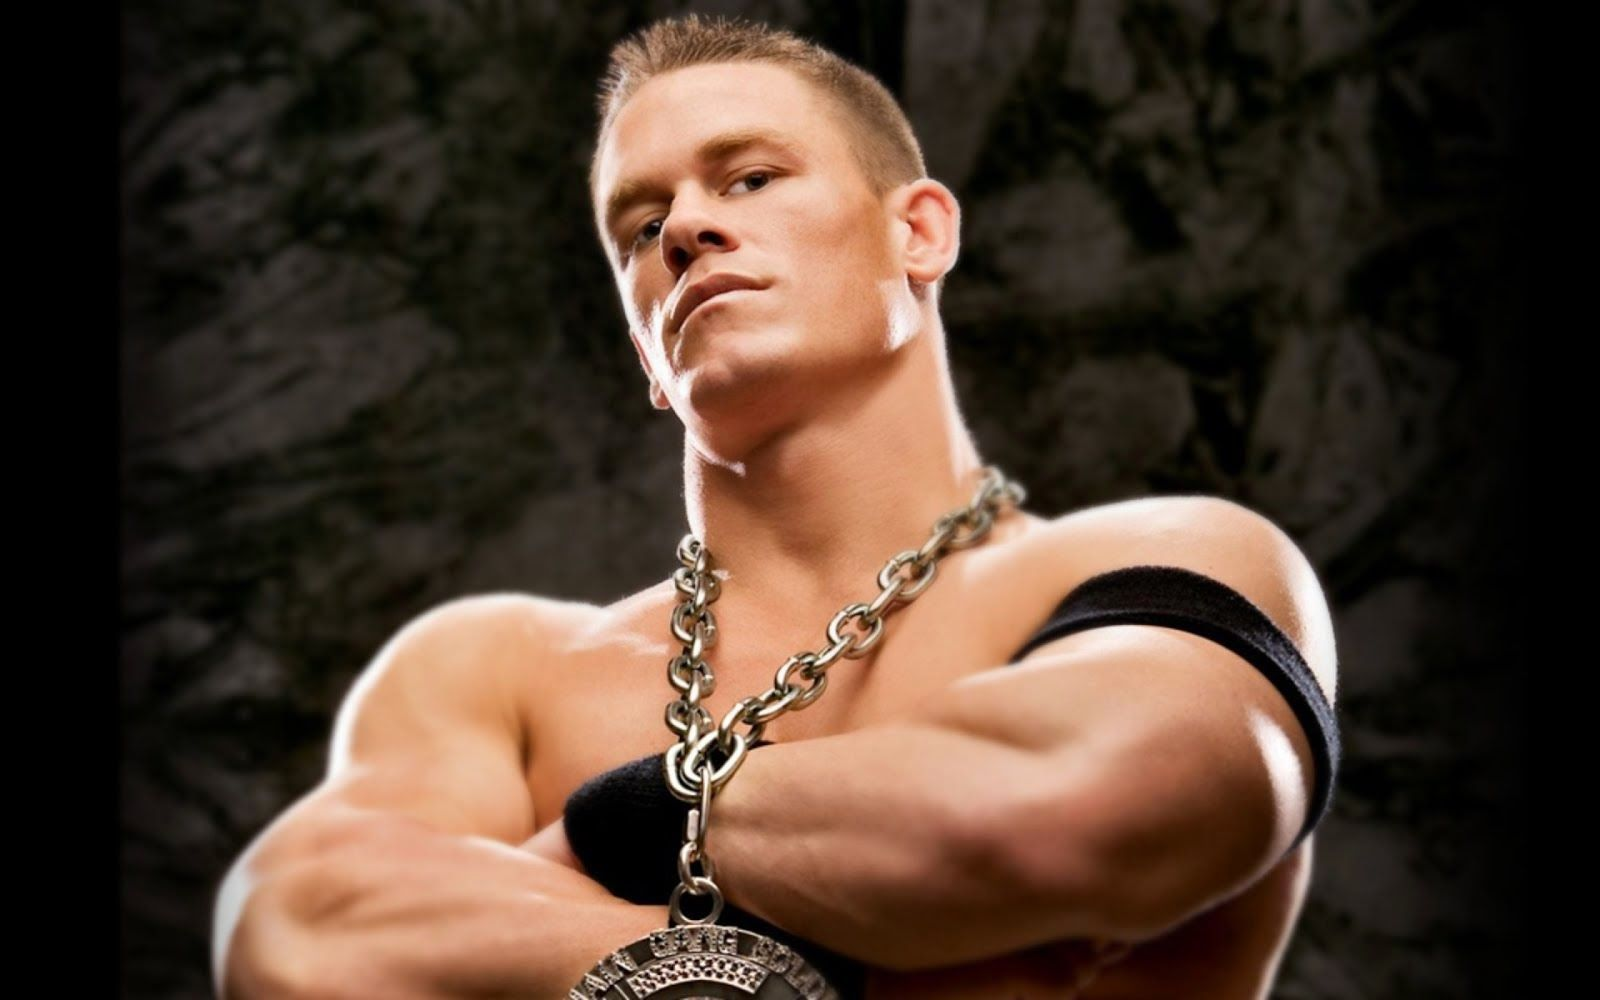 Jone Cena Wallpaper Download